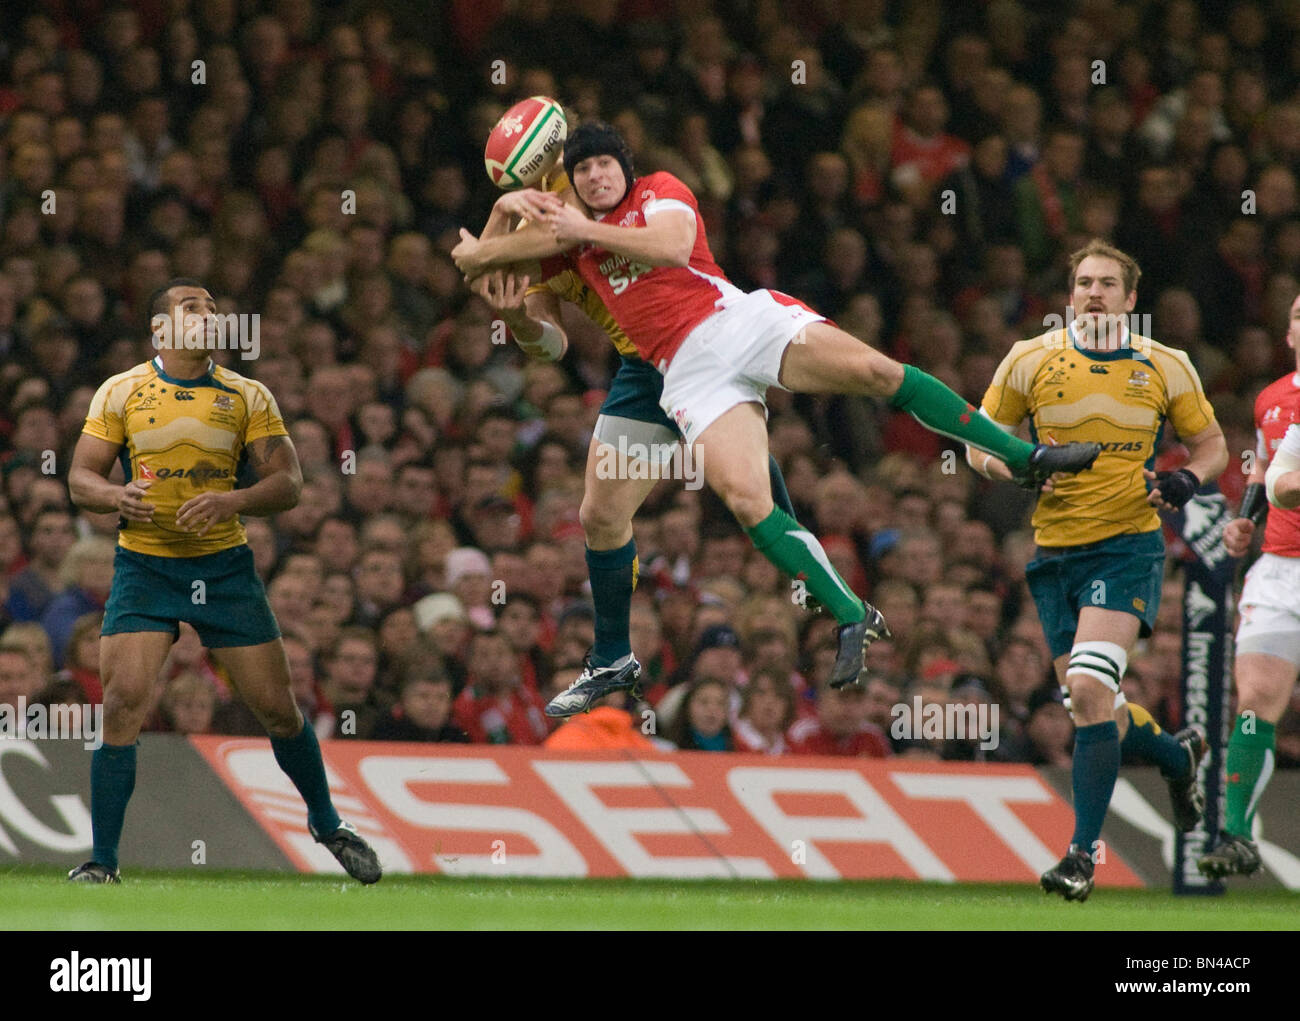 CARDIFF WALES 28-11-2010 Invesco Perpetual International Rugby Union match between Wales and Australia at the Millennium - Stock Image